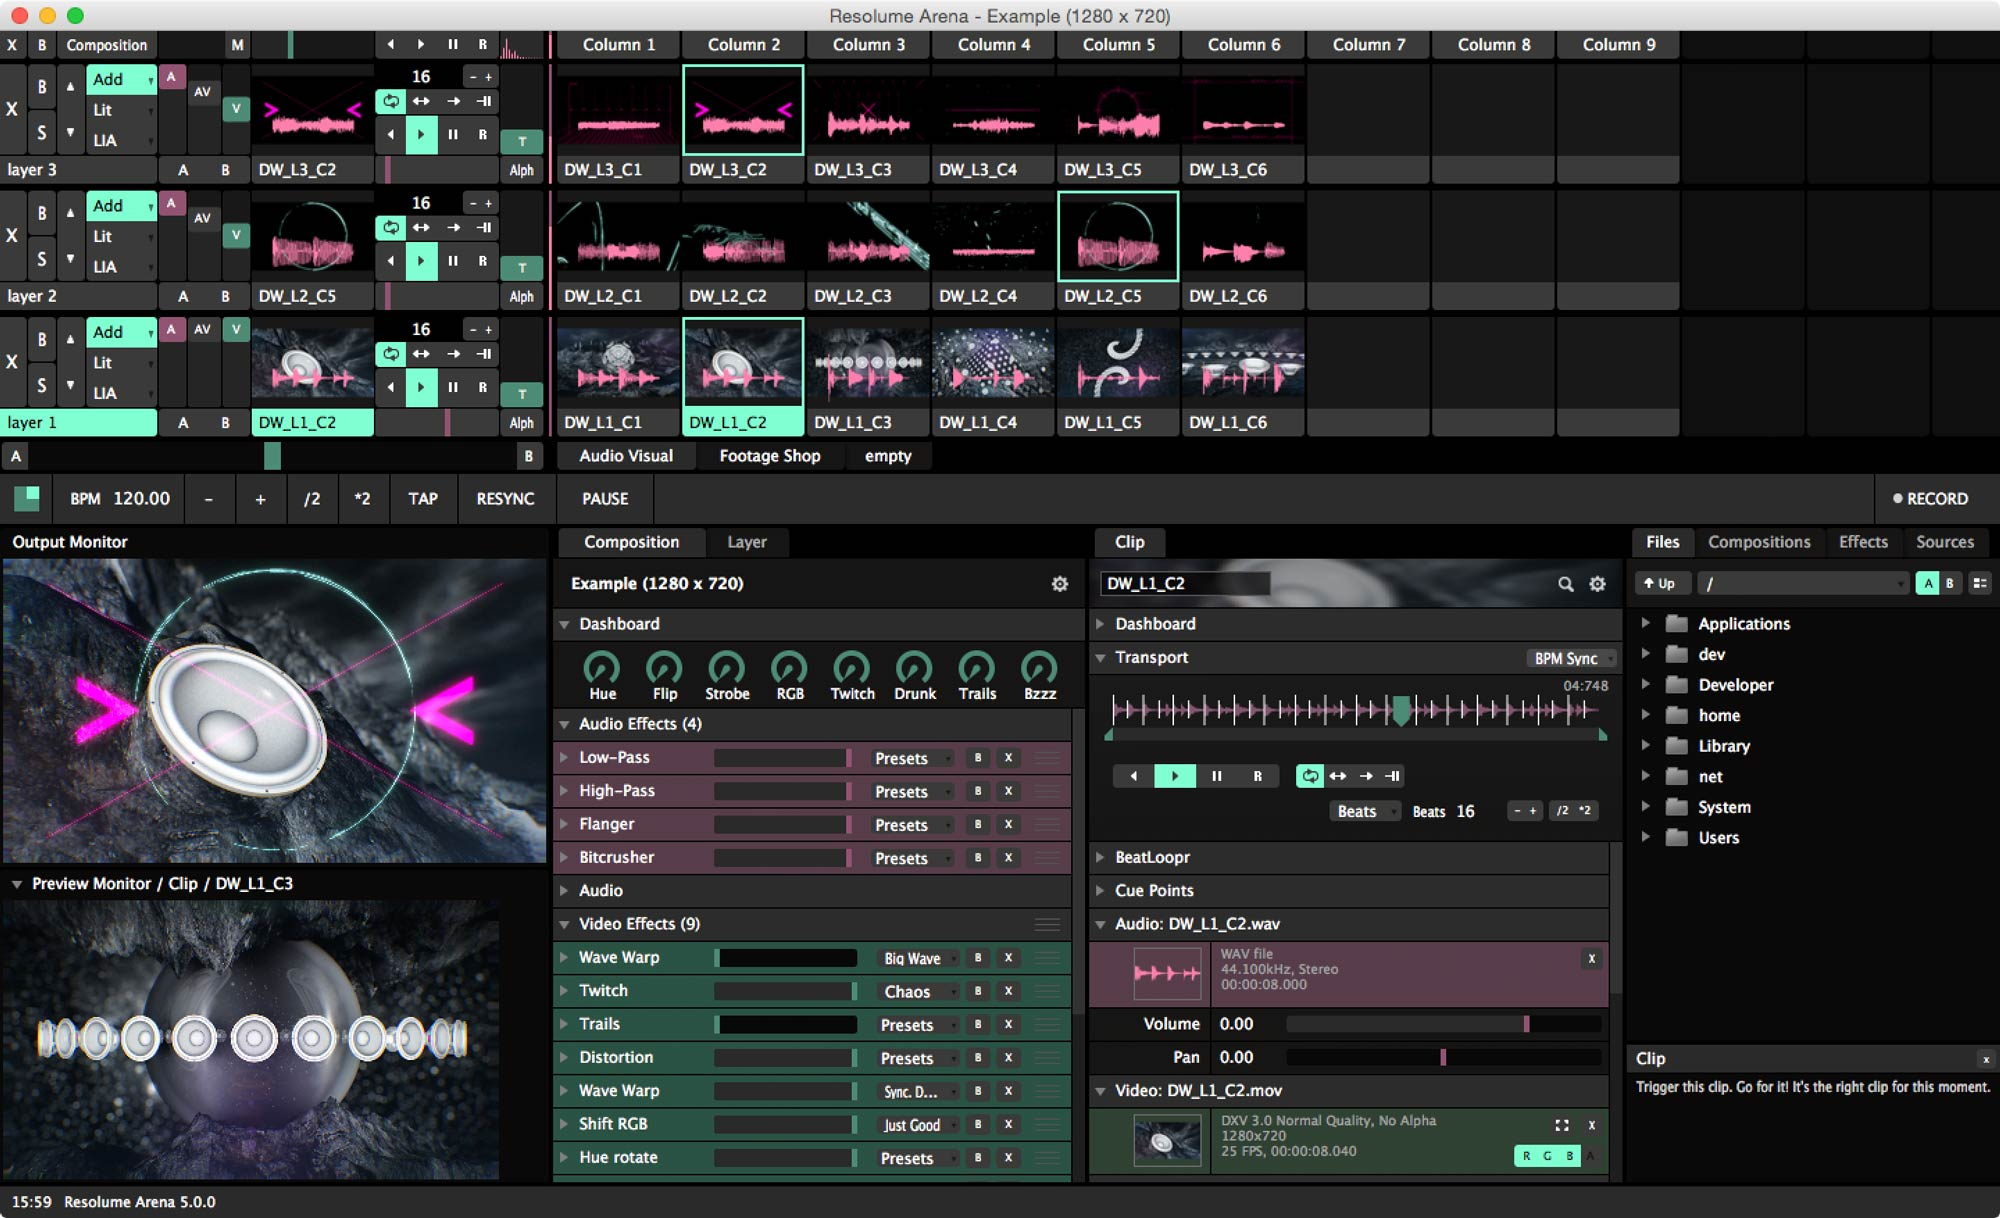 Djing Software Free >> RESOLUME ARENA 5 VJ Software - Live HD Video Mixing + Projection Mapping & Advanced Features